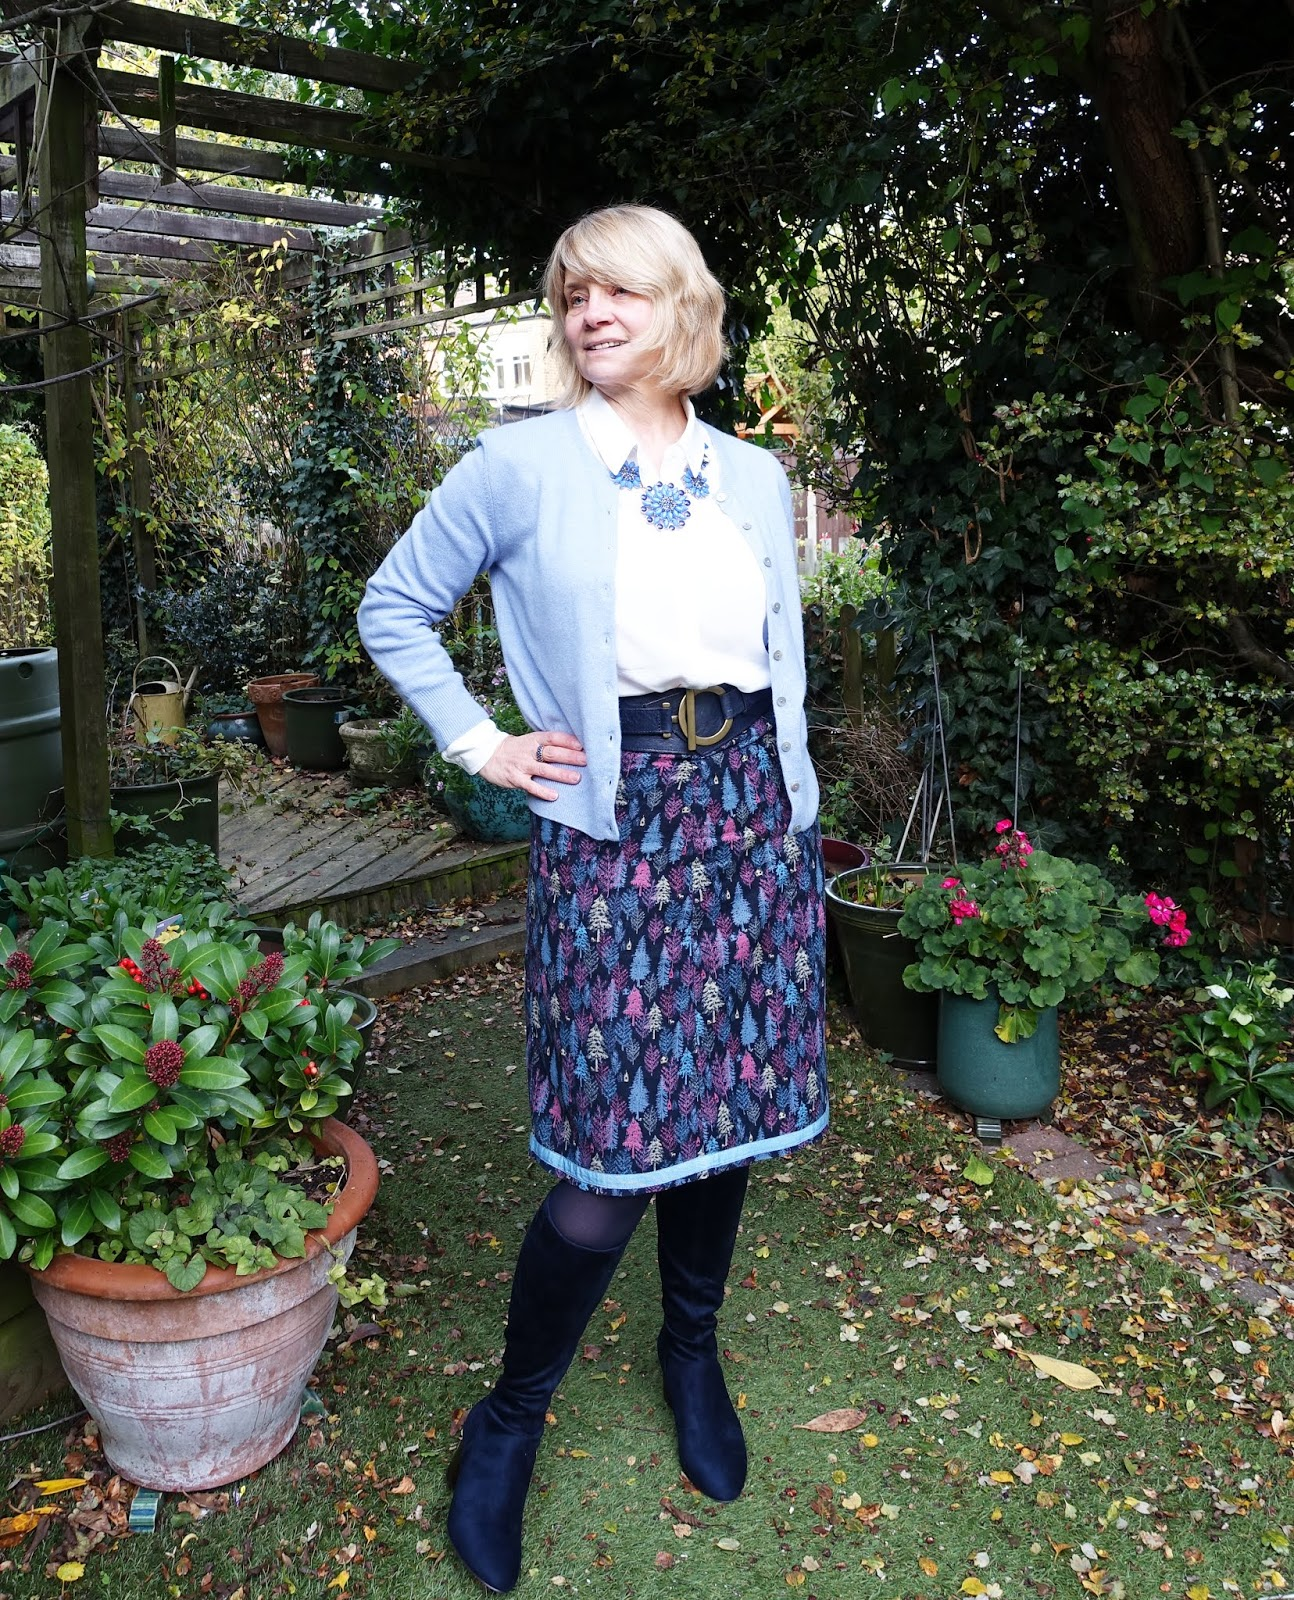 Over 50s style blogger Is This Mutton transforms a skirt and cardigan by adding long boots, a necklace and a wide belt